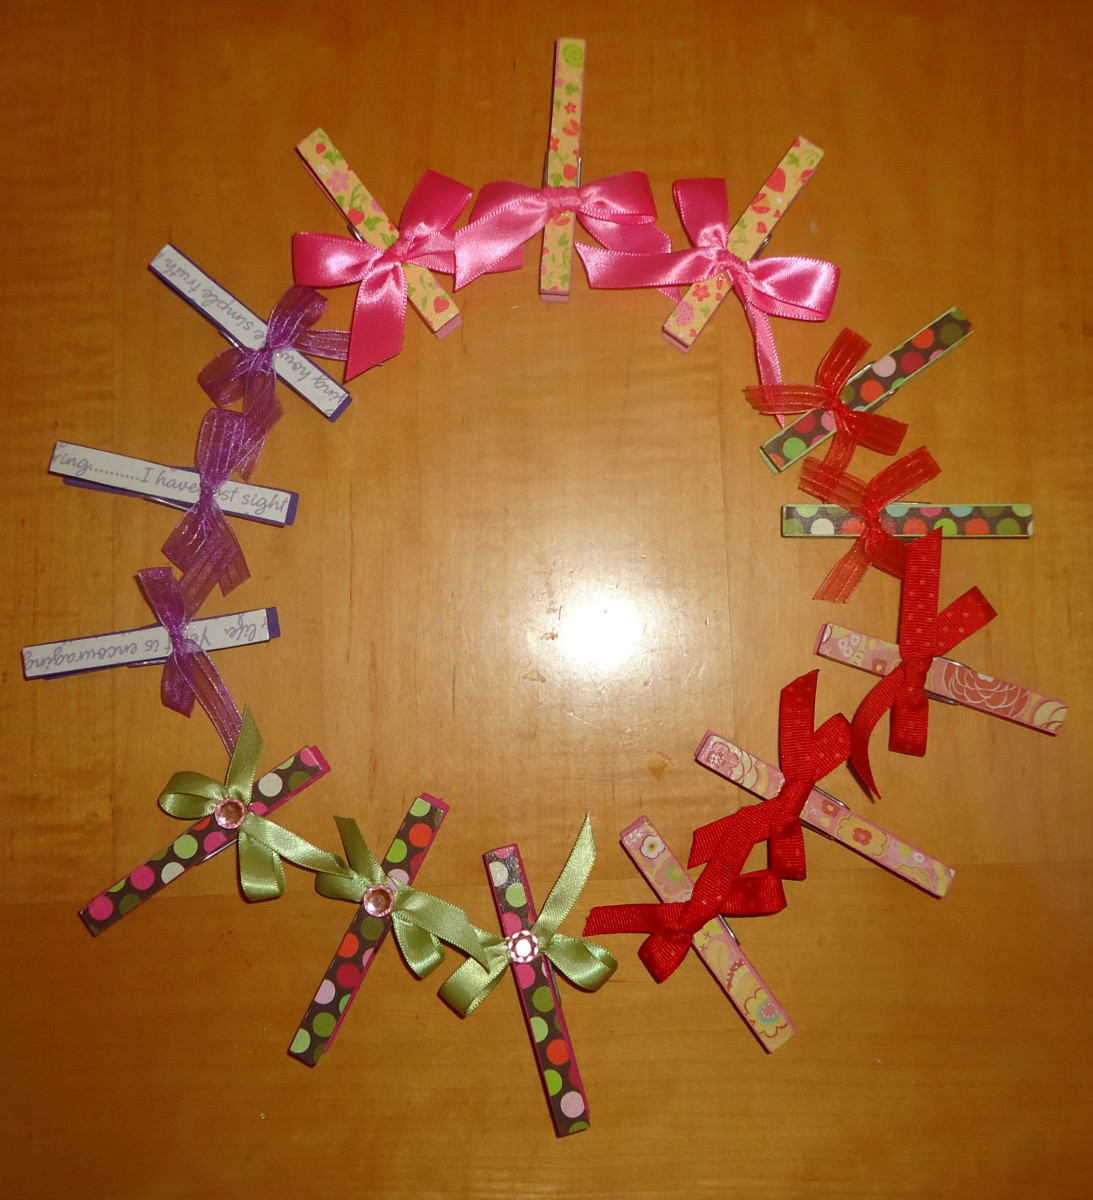 How to Make Decorative Clothespins